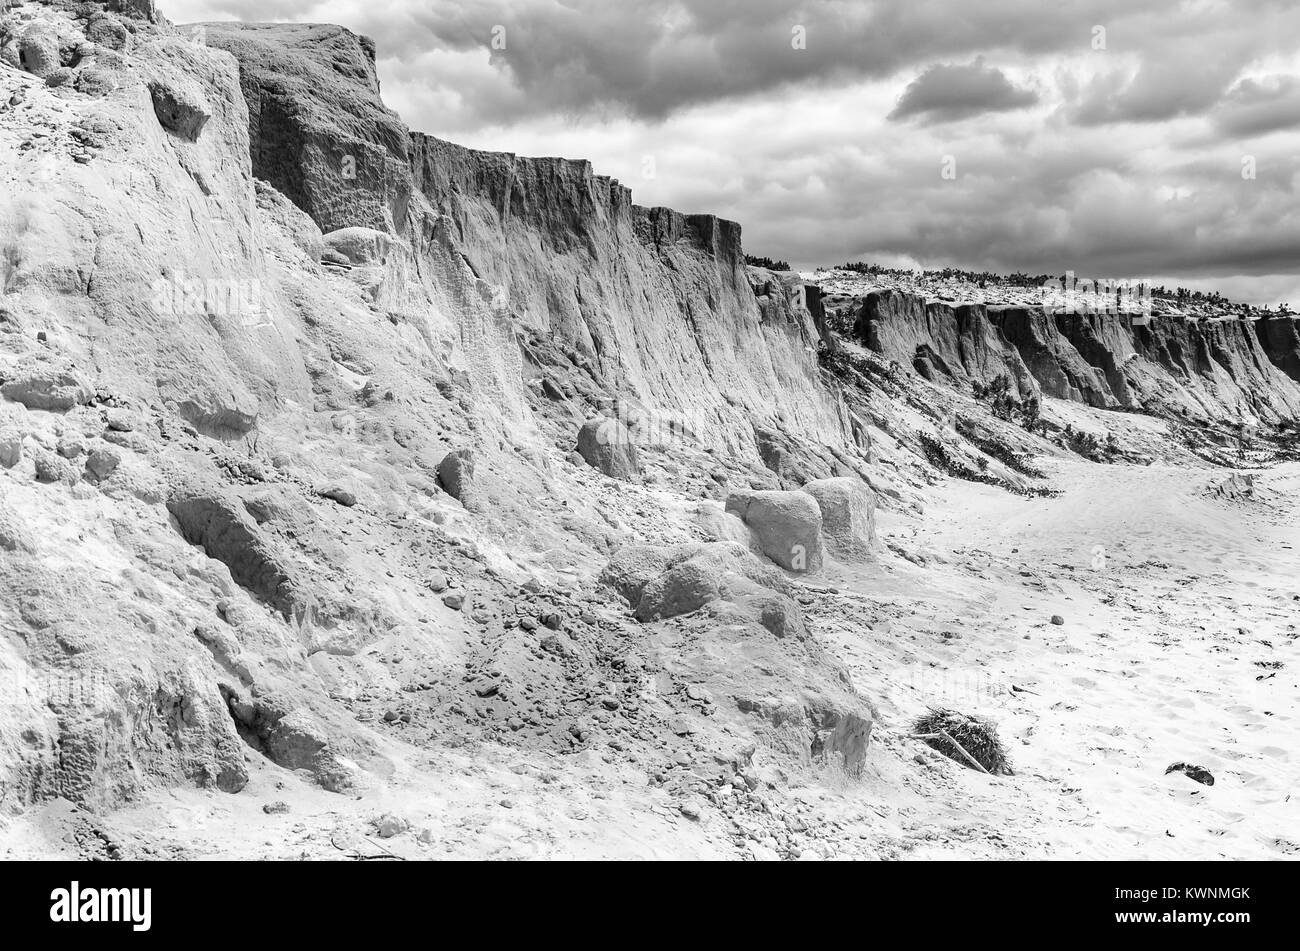 B&W photo of cliffs at the Canoa quebrada beach at the Ceara state in Brazil - Stock Image